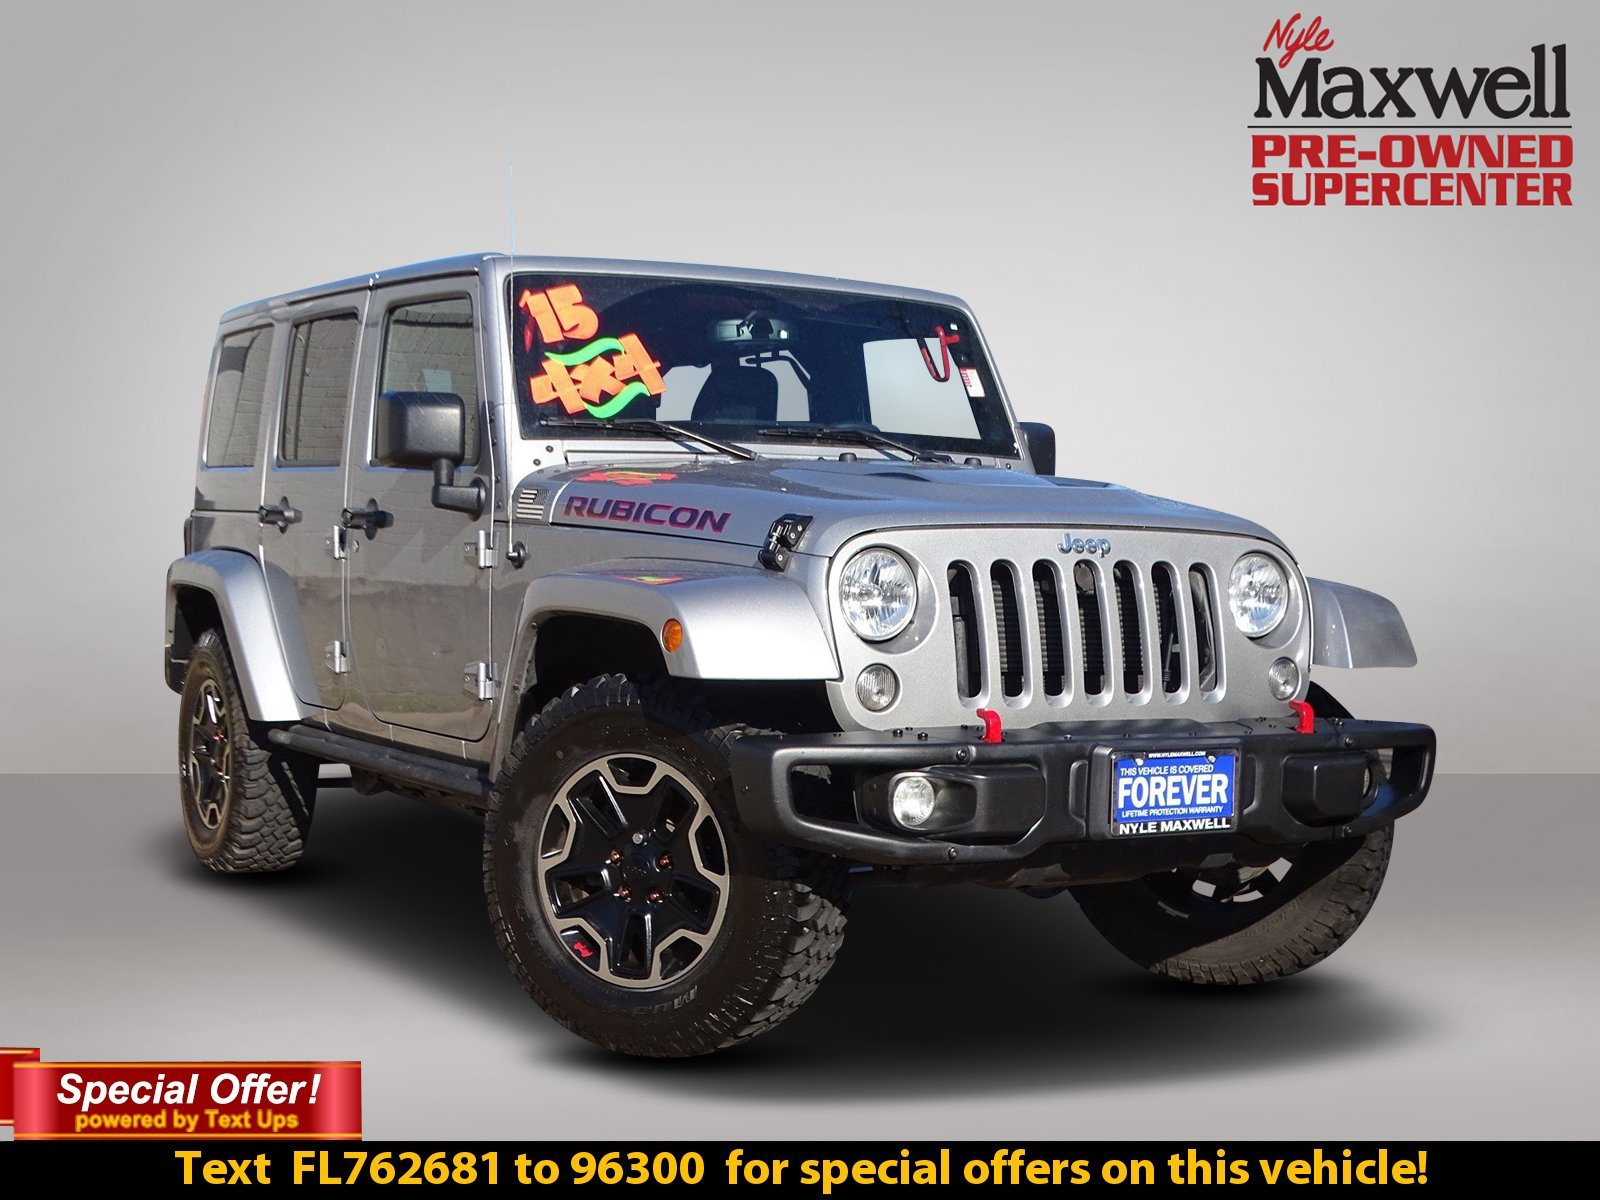 Certified Pre-Owned 2015 Jeep Wrangler Unlimited Rubicon Hard Rock